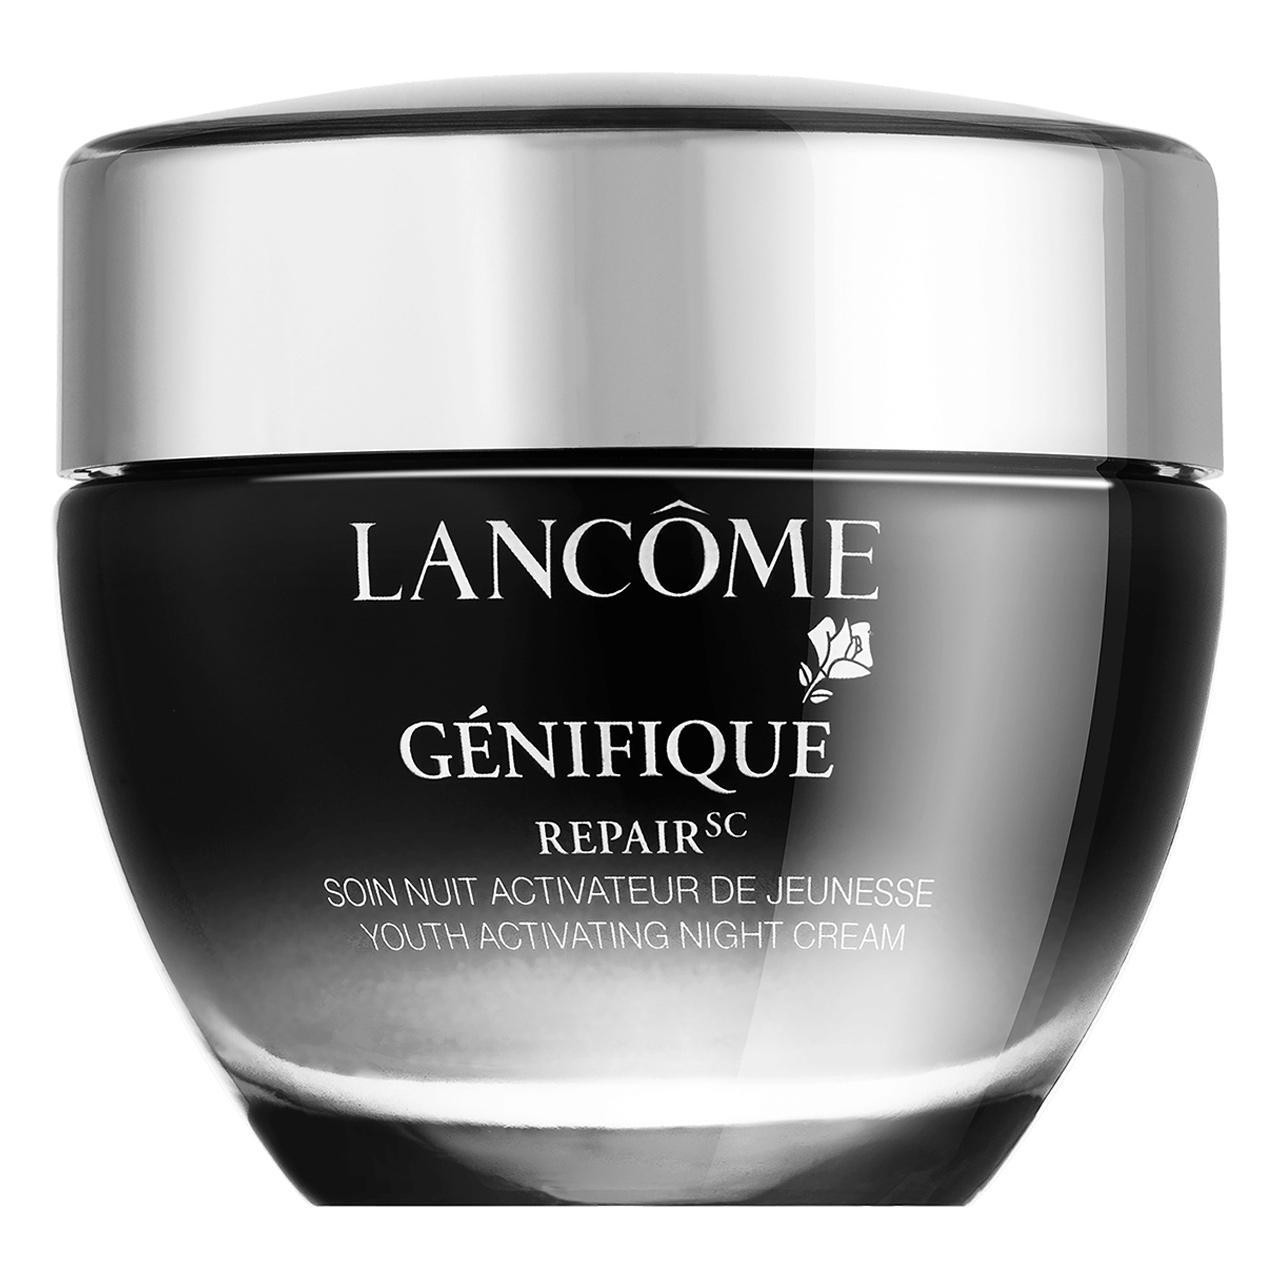 Lancome Genifique Repair Youth Activating Night Cream (50ml)